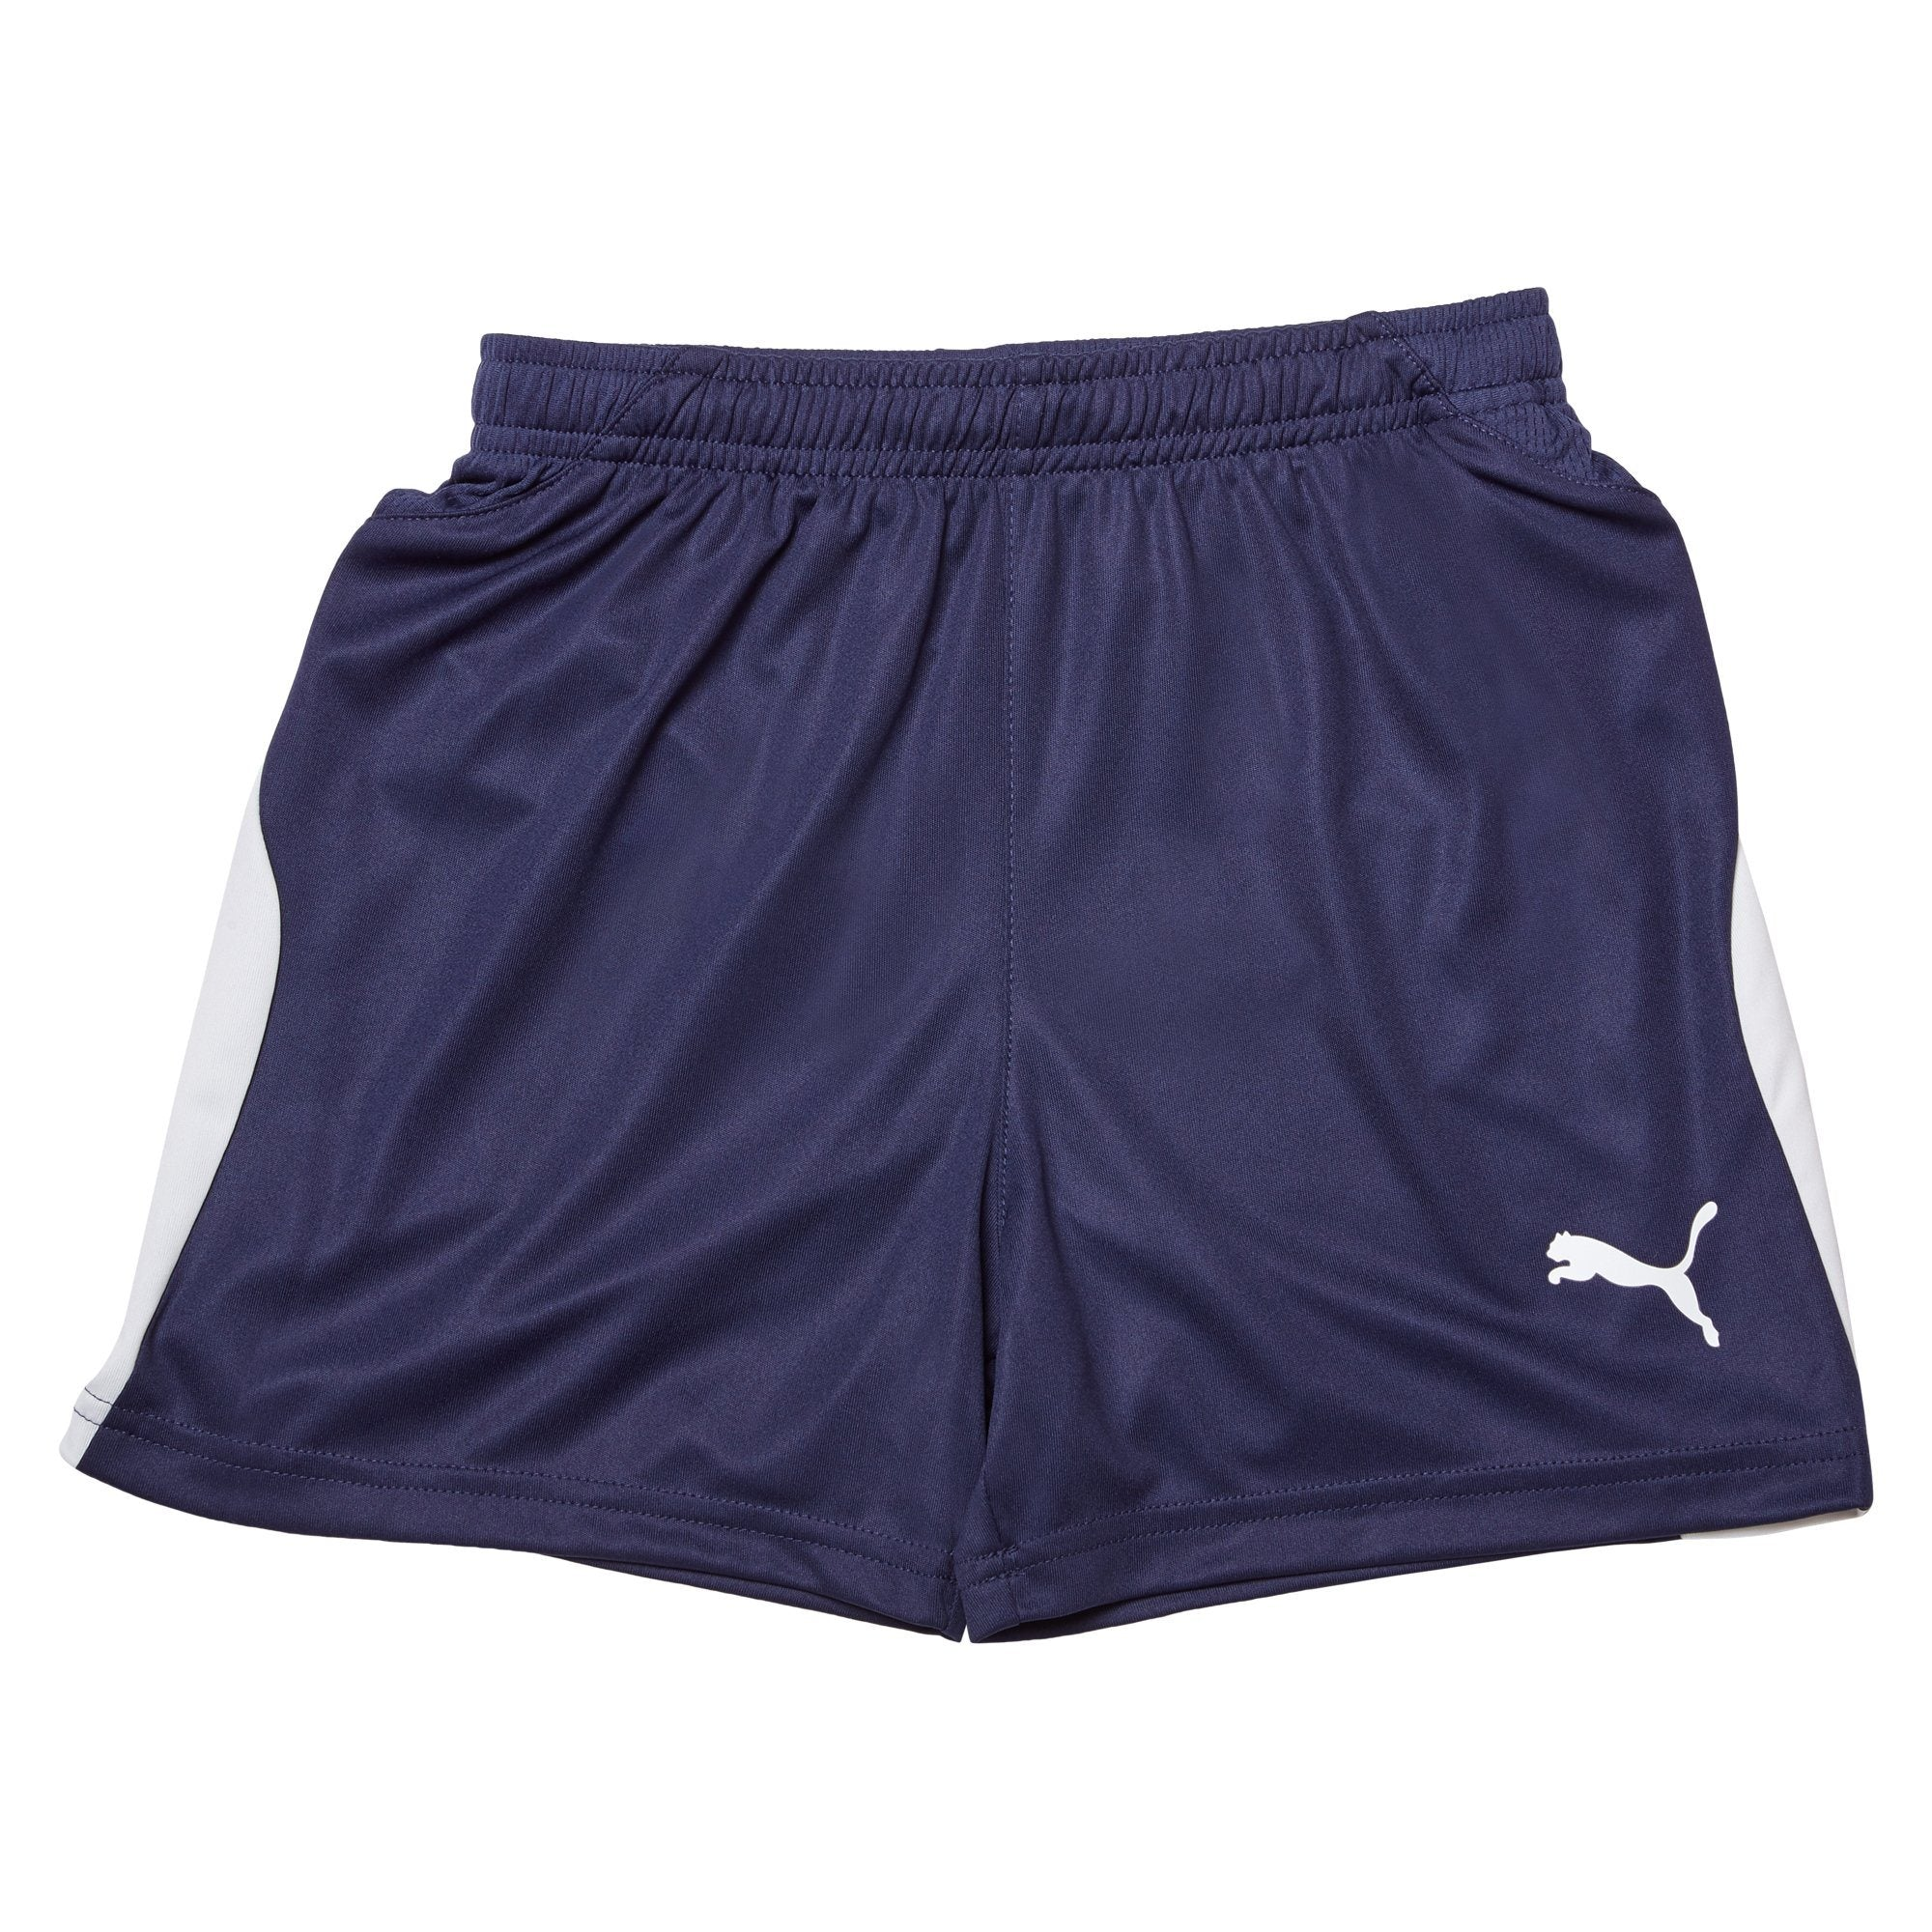 Puma Junior Liga Shorts - Peacoat/White Apparel Puma  (2122605199419)